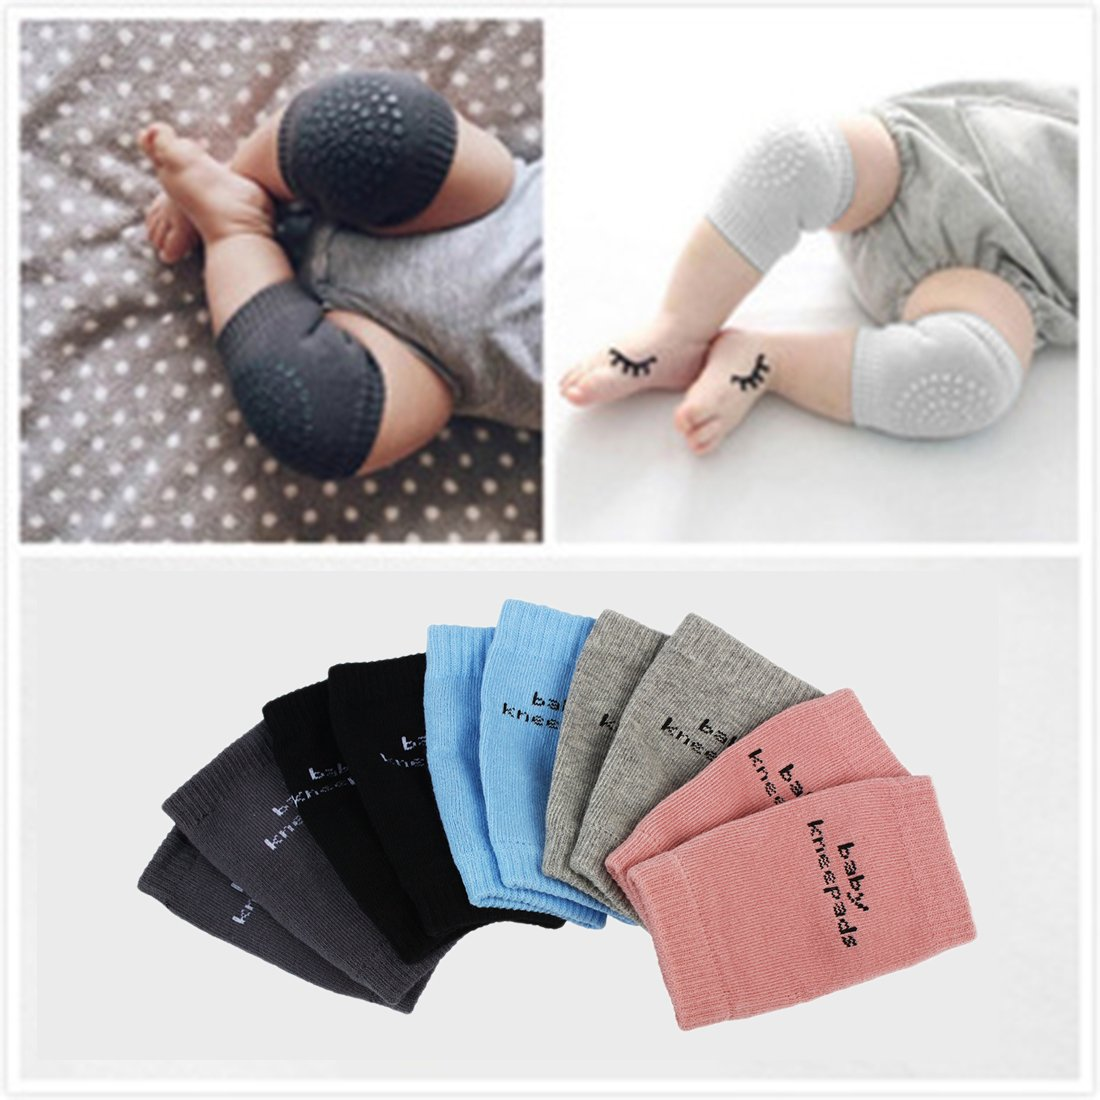 Andux 5 Pairs Baby Crawling Anti-Slip Knee for Unisex Baby Multiple colors XBW-01